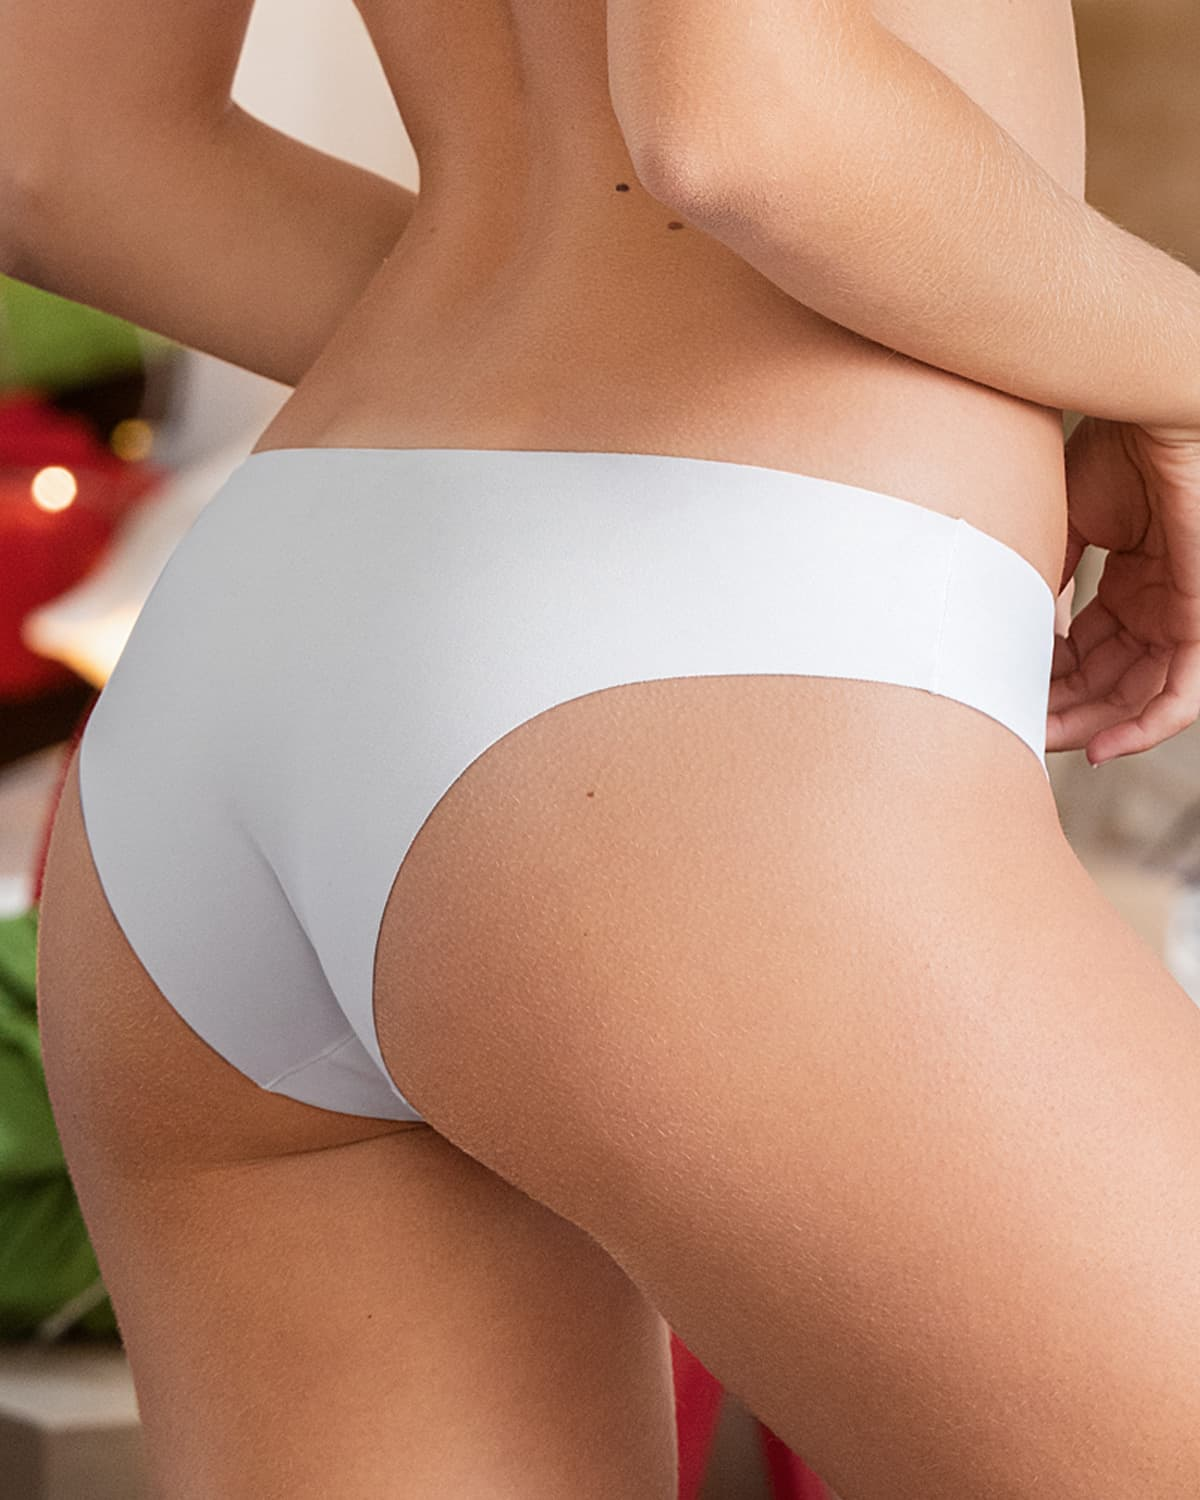 Tanga panties are a new silhouette in the panties arena, taken from European styles that feature more rear coverage than the thong, but less than the average bikini panty. As you might imagine, there is still plenty of